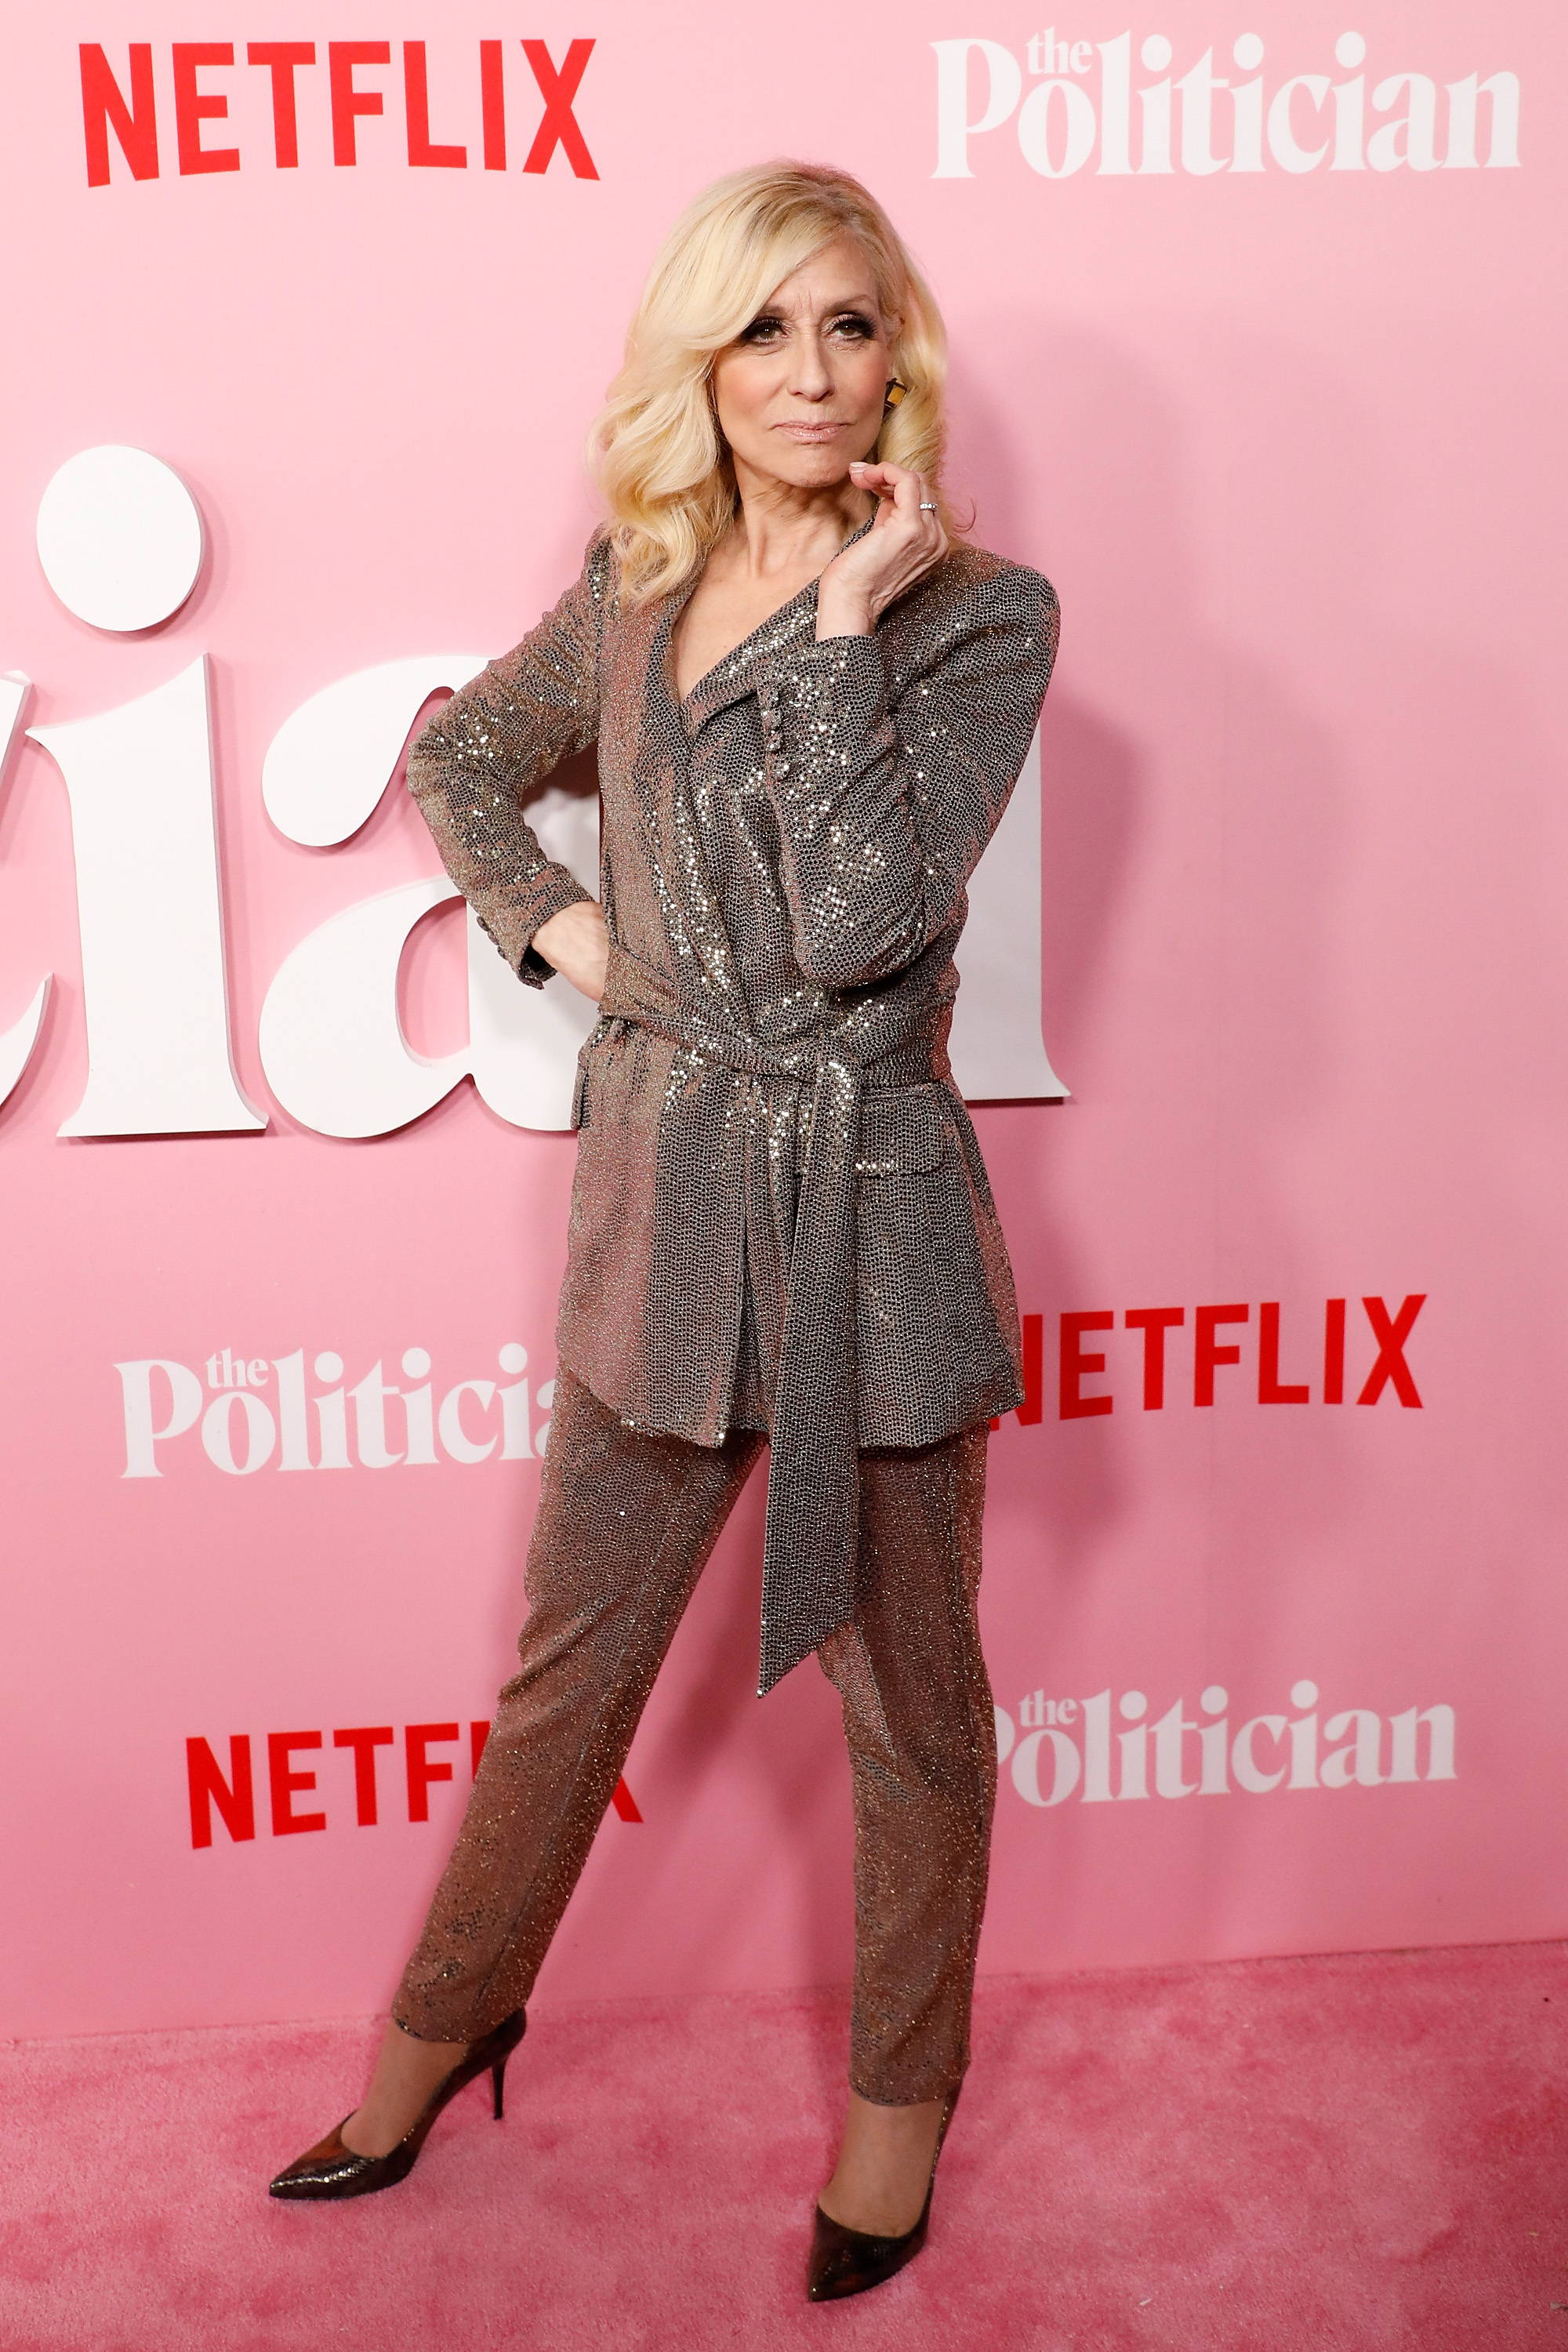 """Judith Light wearing the liquid sequin gold wrap evening suit from the Badgley Mischka fall 2019 collection at the premiere of """"The Politician"""""""